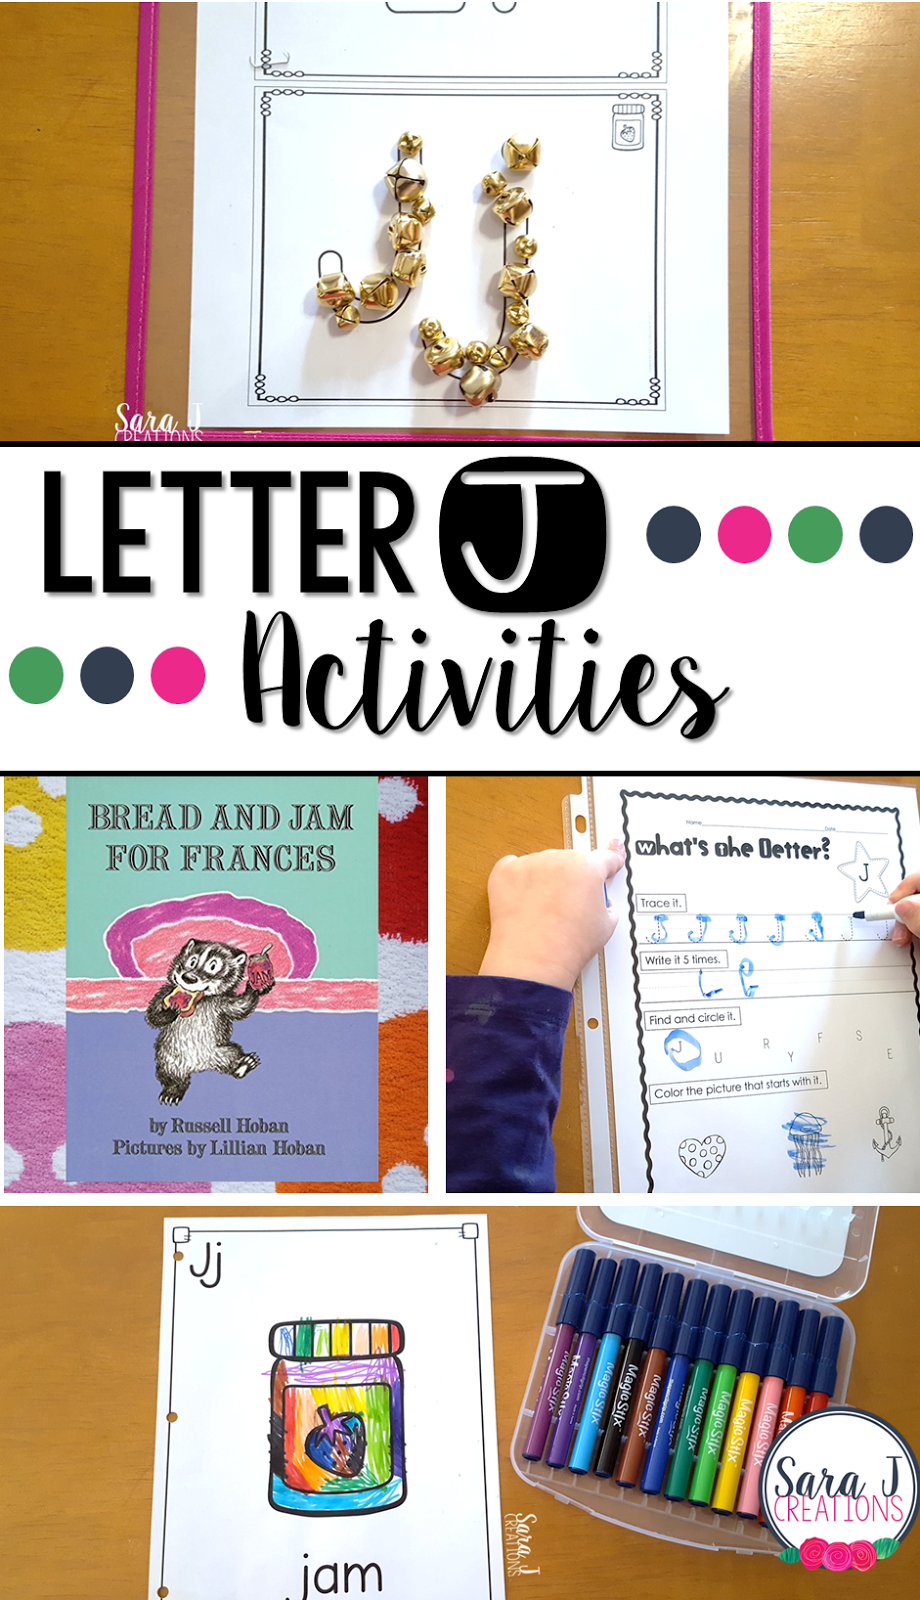 Letter J Activities Sara J Creations